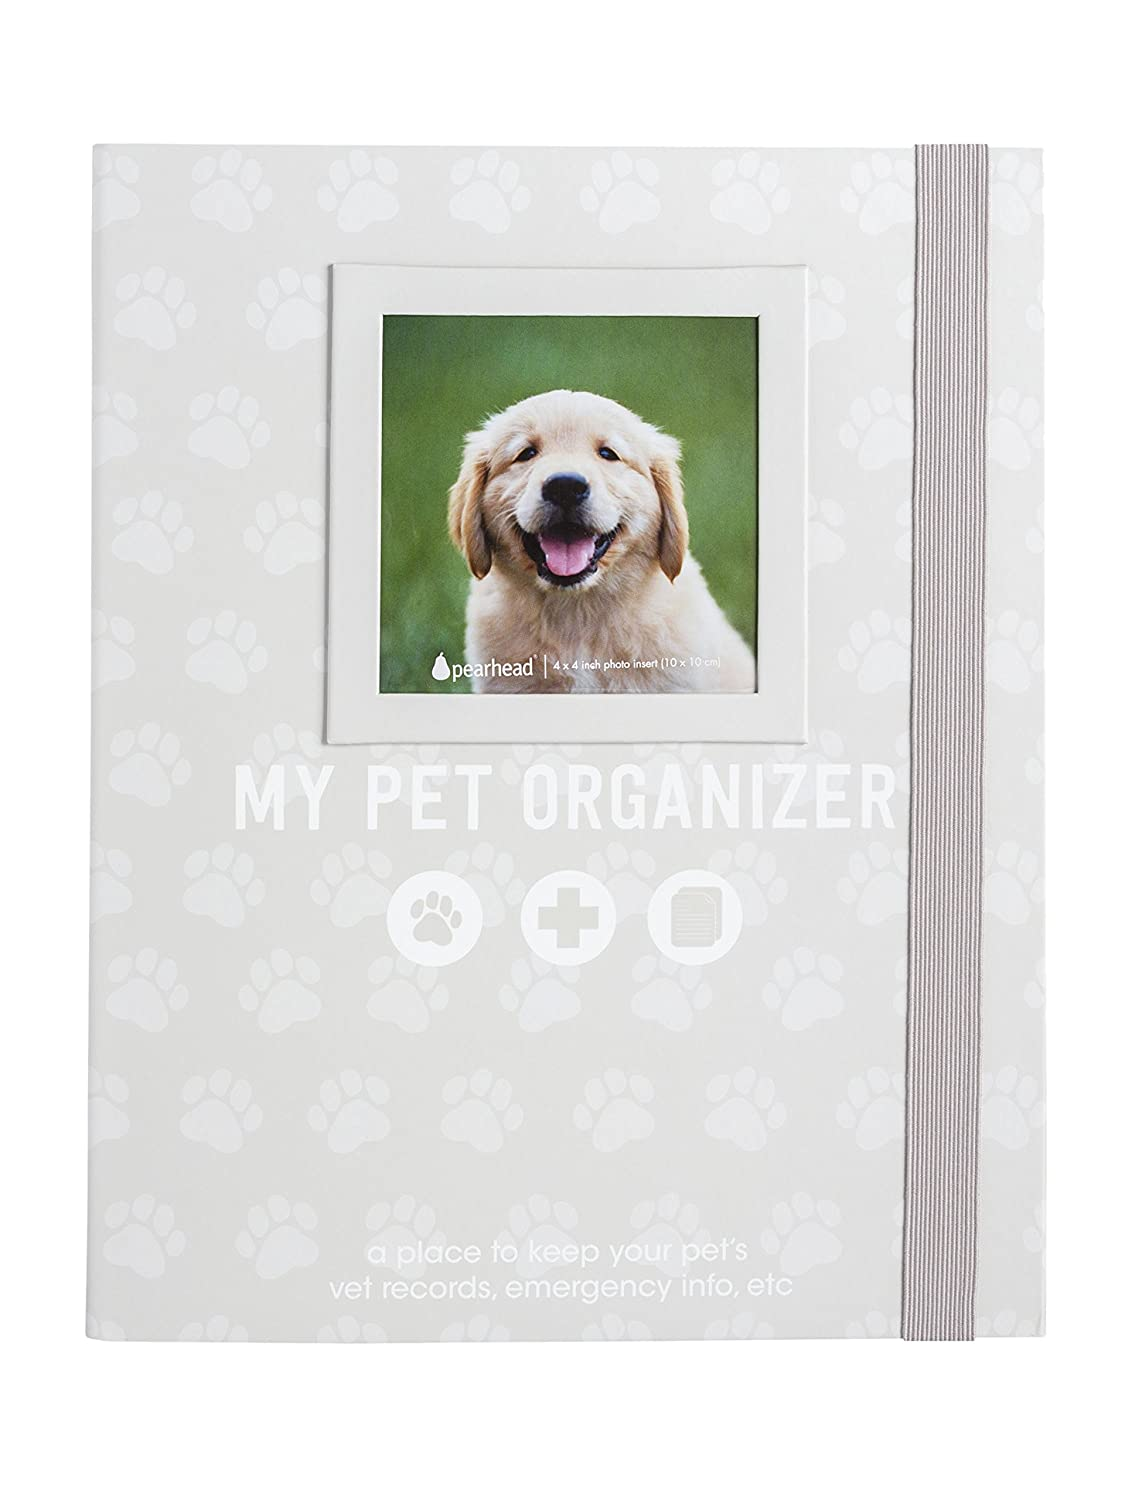 Dog Owner Gifts Cherish Every Memory Of Your Pup Pearhead Pet Milestone Keepsake Perfect for Dog People or New Puppy Pet Owners Paw Print Design